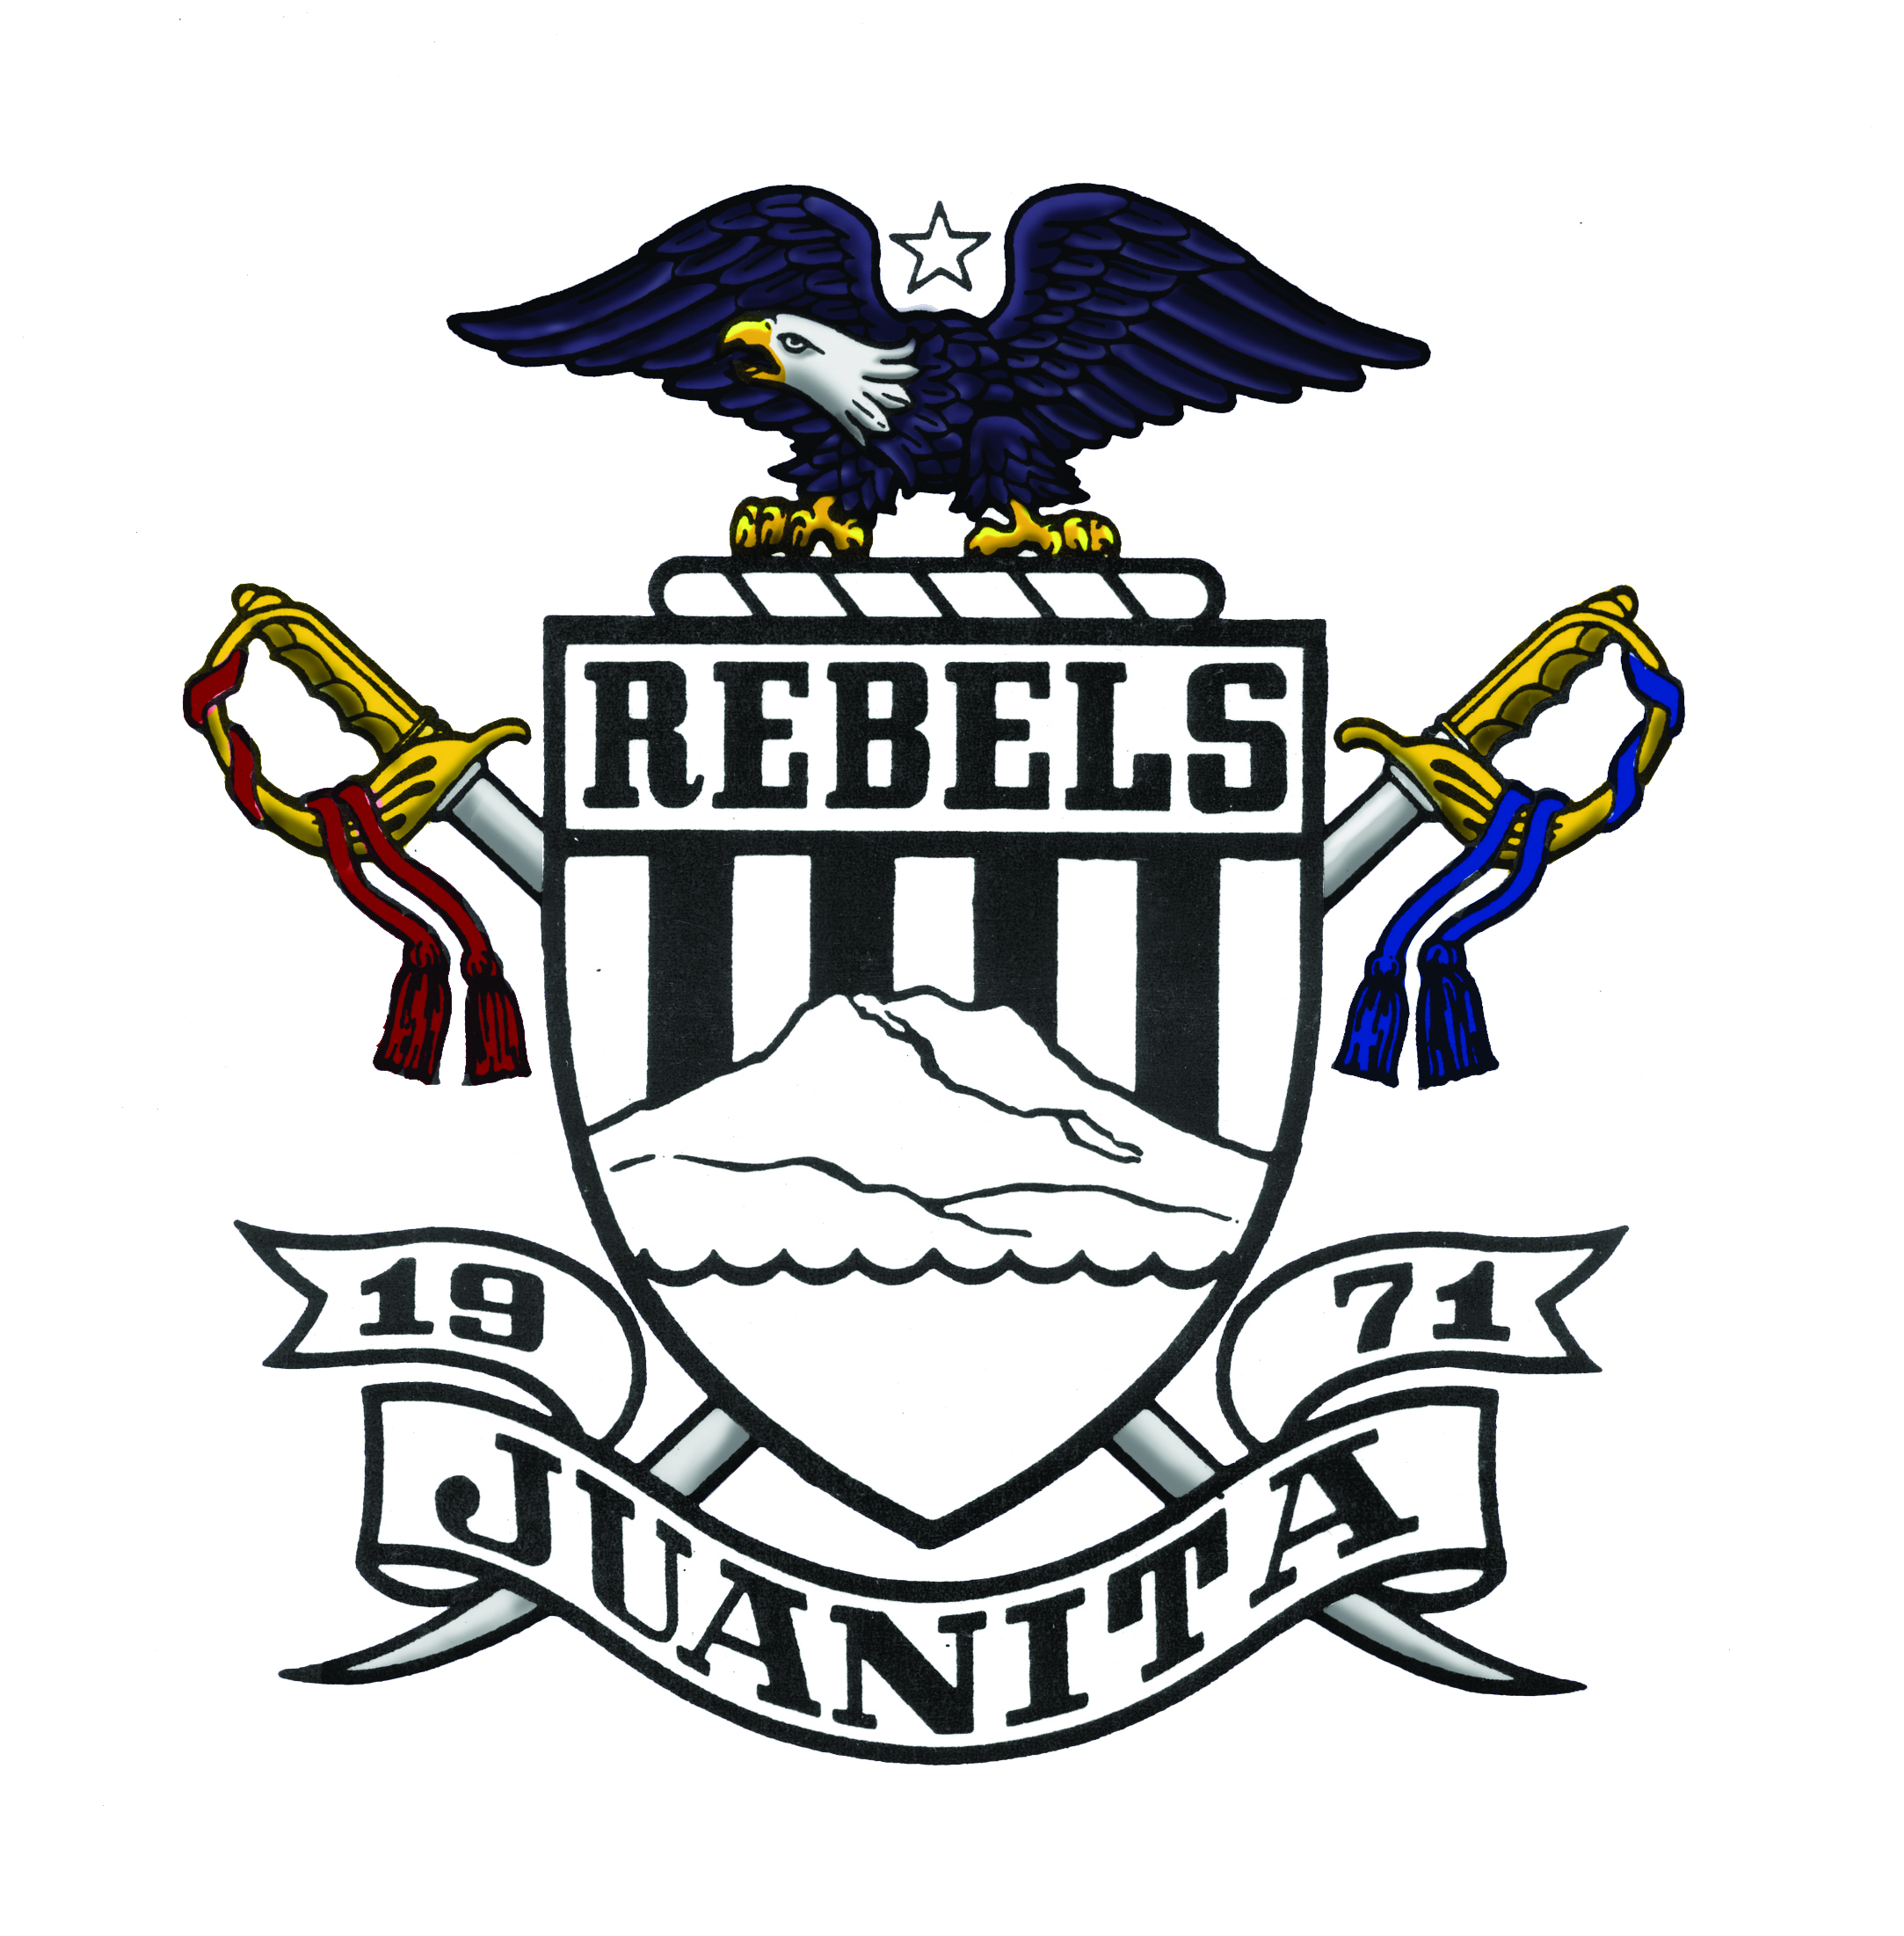 JHS school crest with eagle on top. Says Rebels, 1971, and Juanita